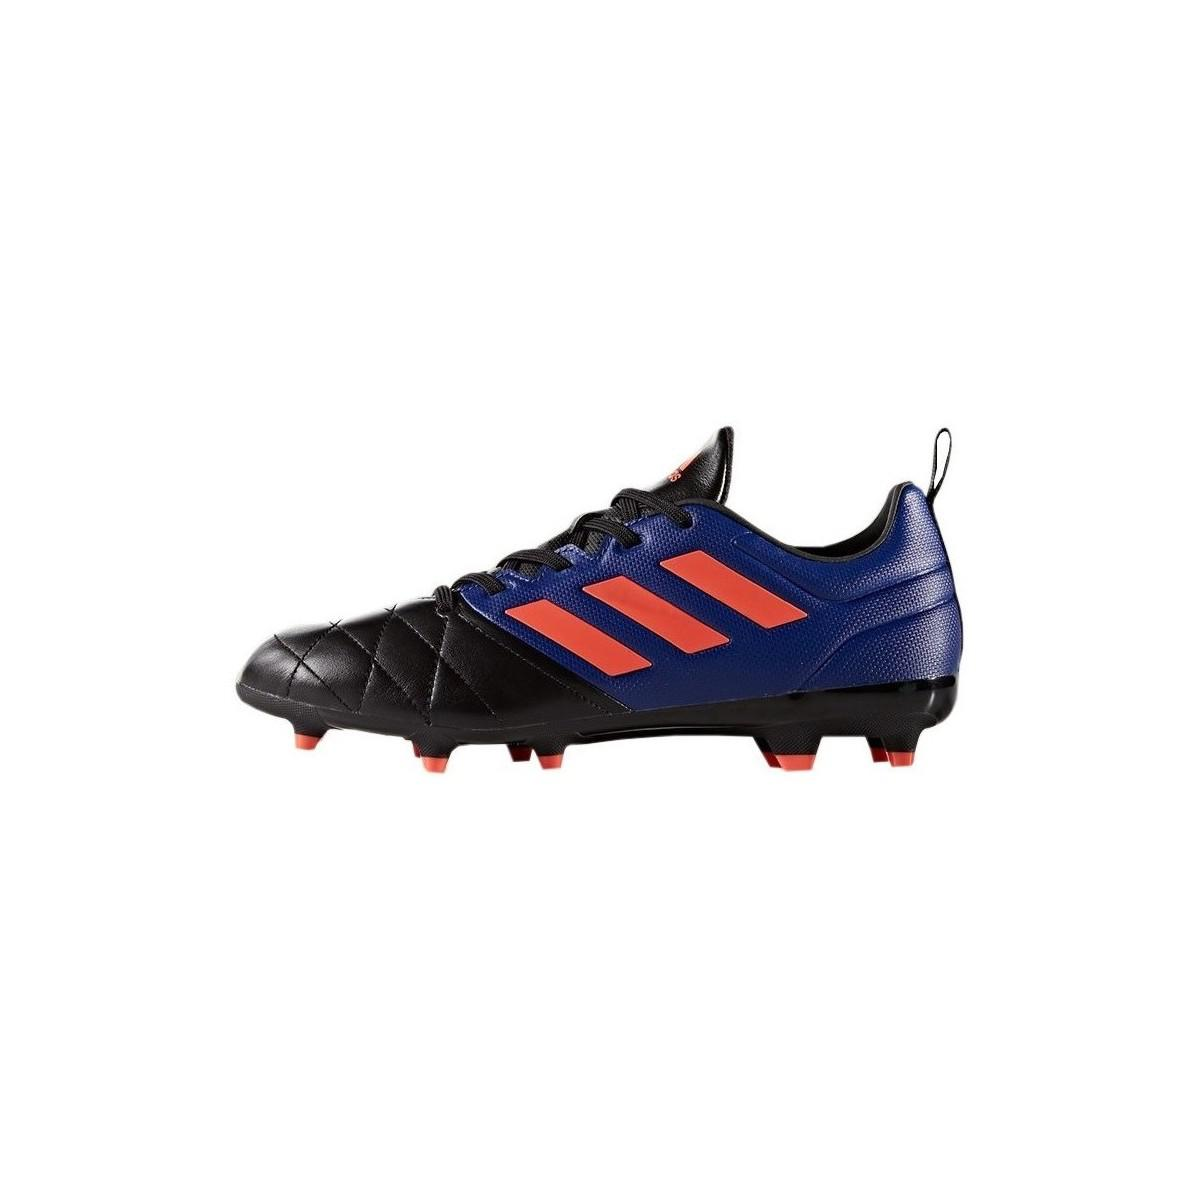 Ace 173 Fg Woman Women's Football Boots In Black